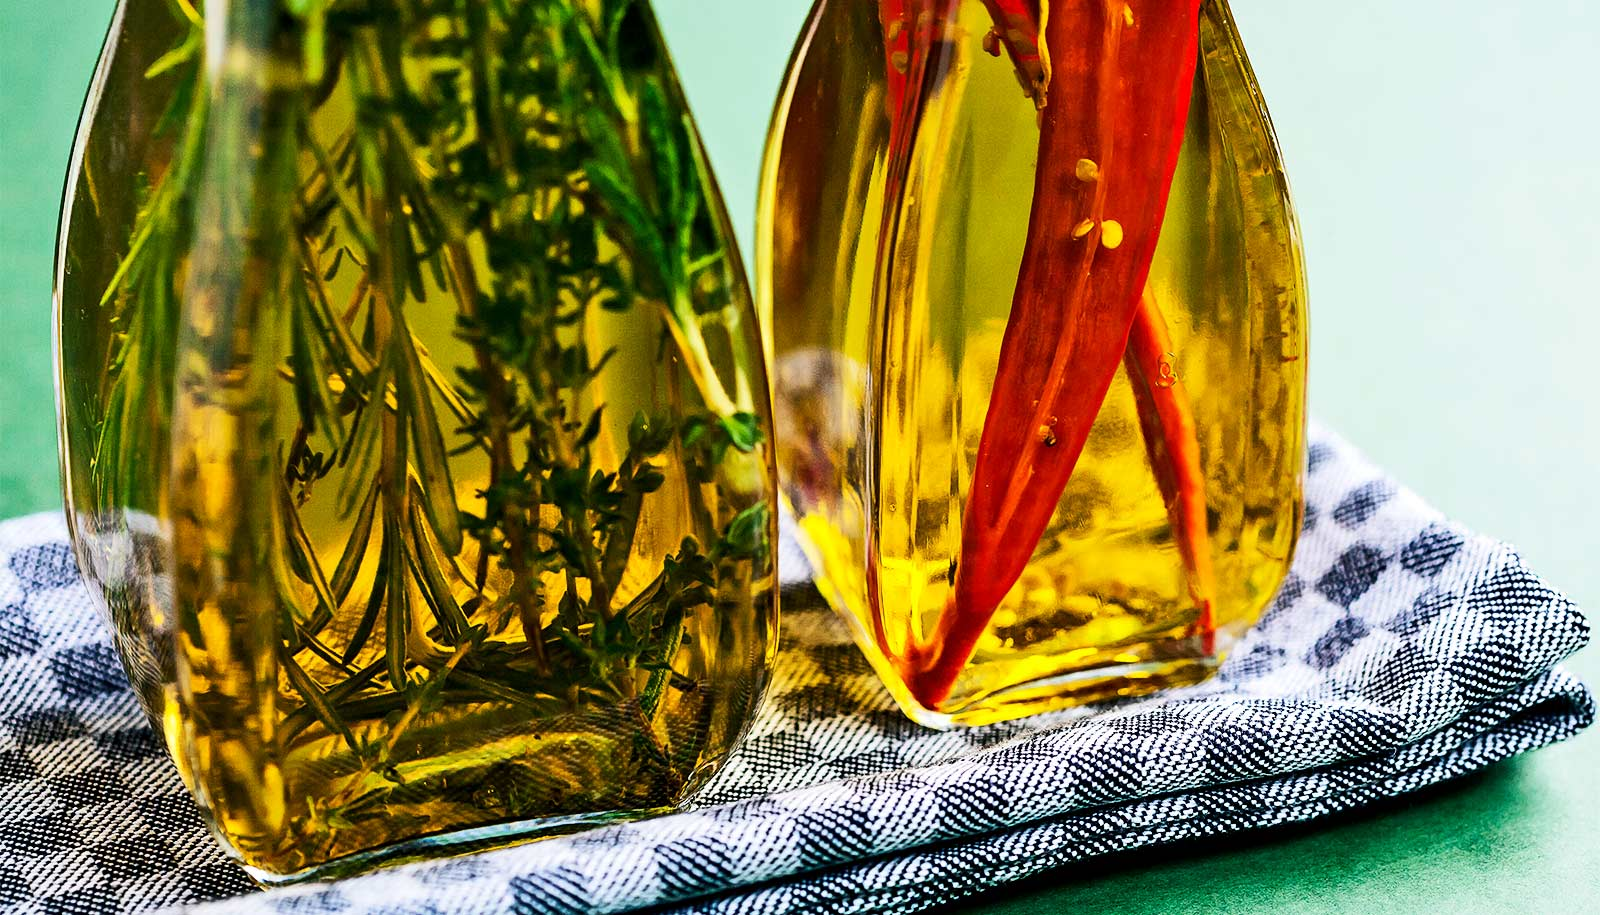 How to Infuse Oils, Vinegars, and Booze Without Getting Sick